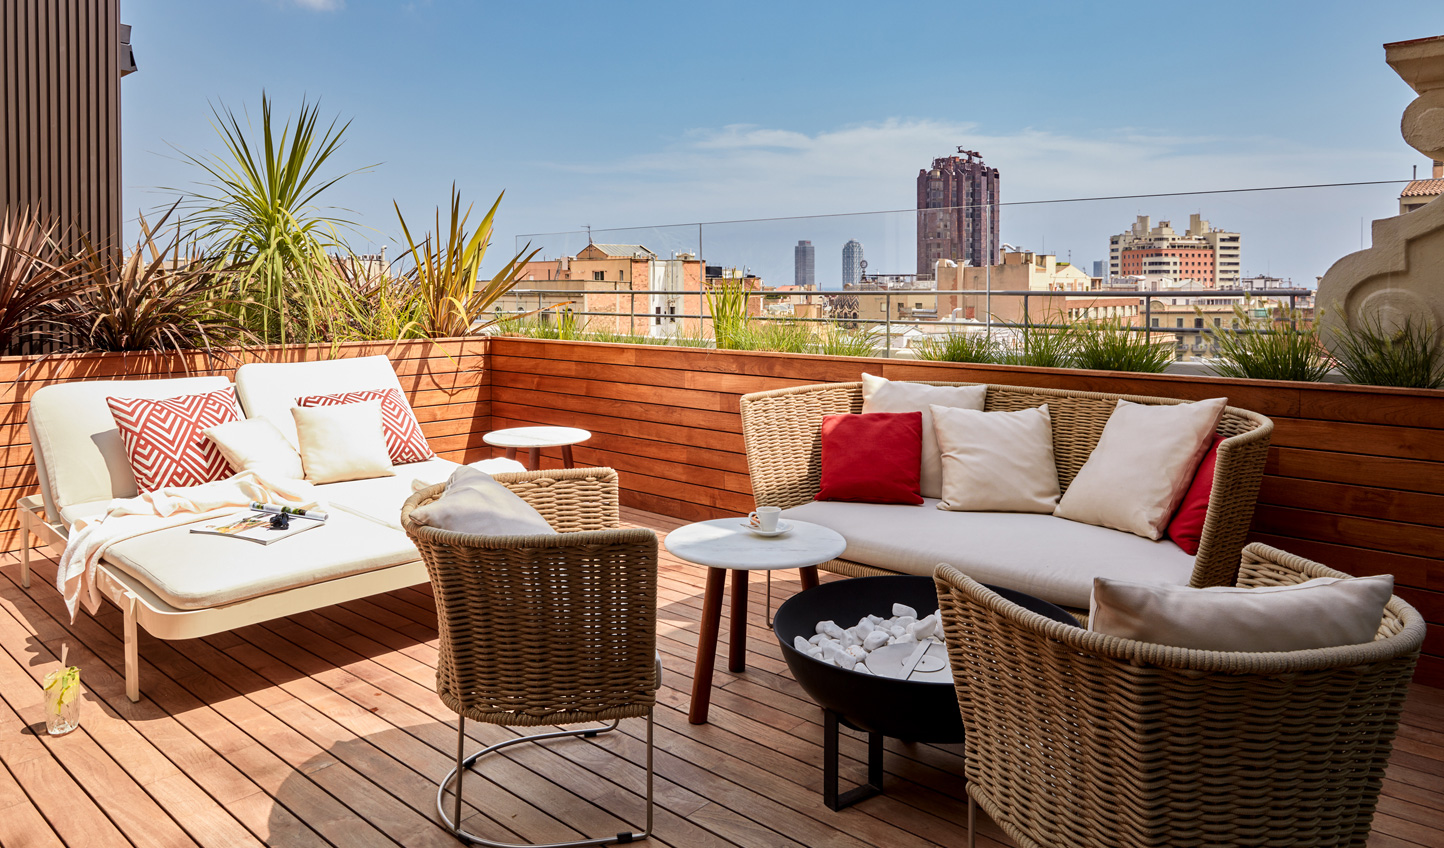 Bask in the Spanish sun out on your private terrace